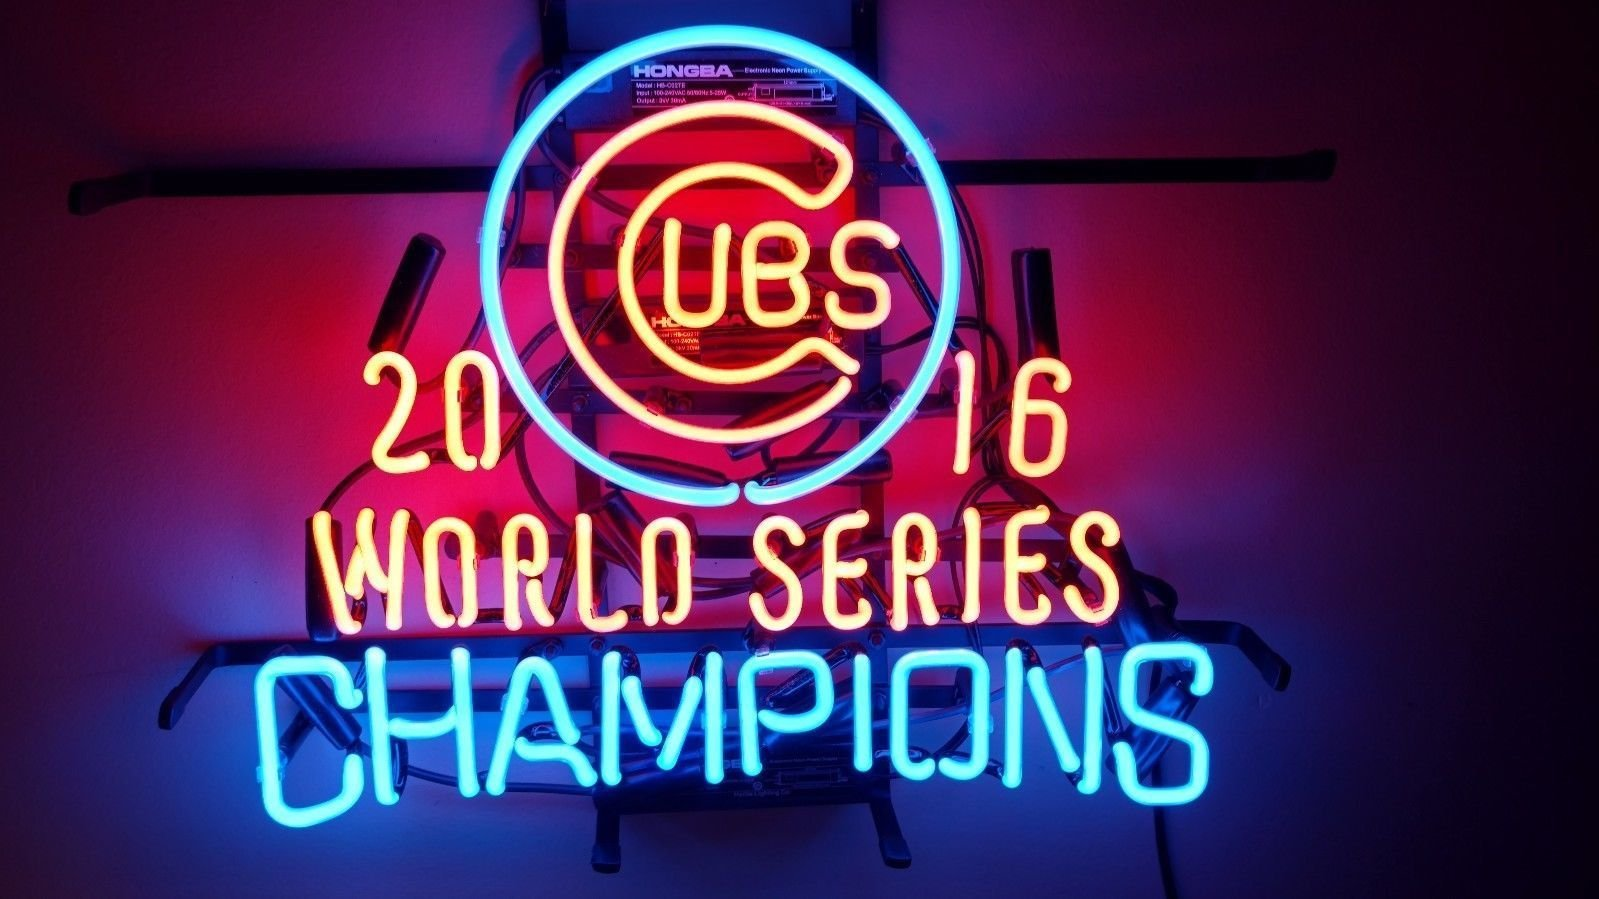 Urby™ 19''x15'' Sports Unions C ubs 2016WorldChams Custom Neon Sign Beer Bar Pub Neon Light 3-Year Warranty-Excellent & Unique Handicraft! U124 by Urby